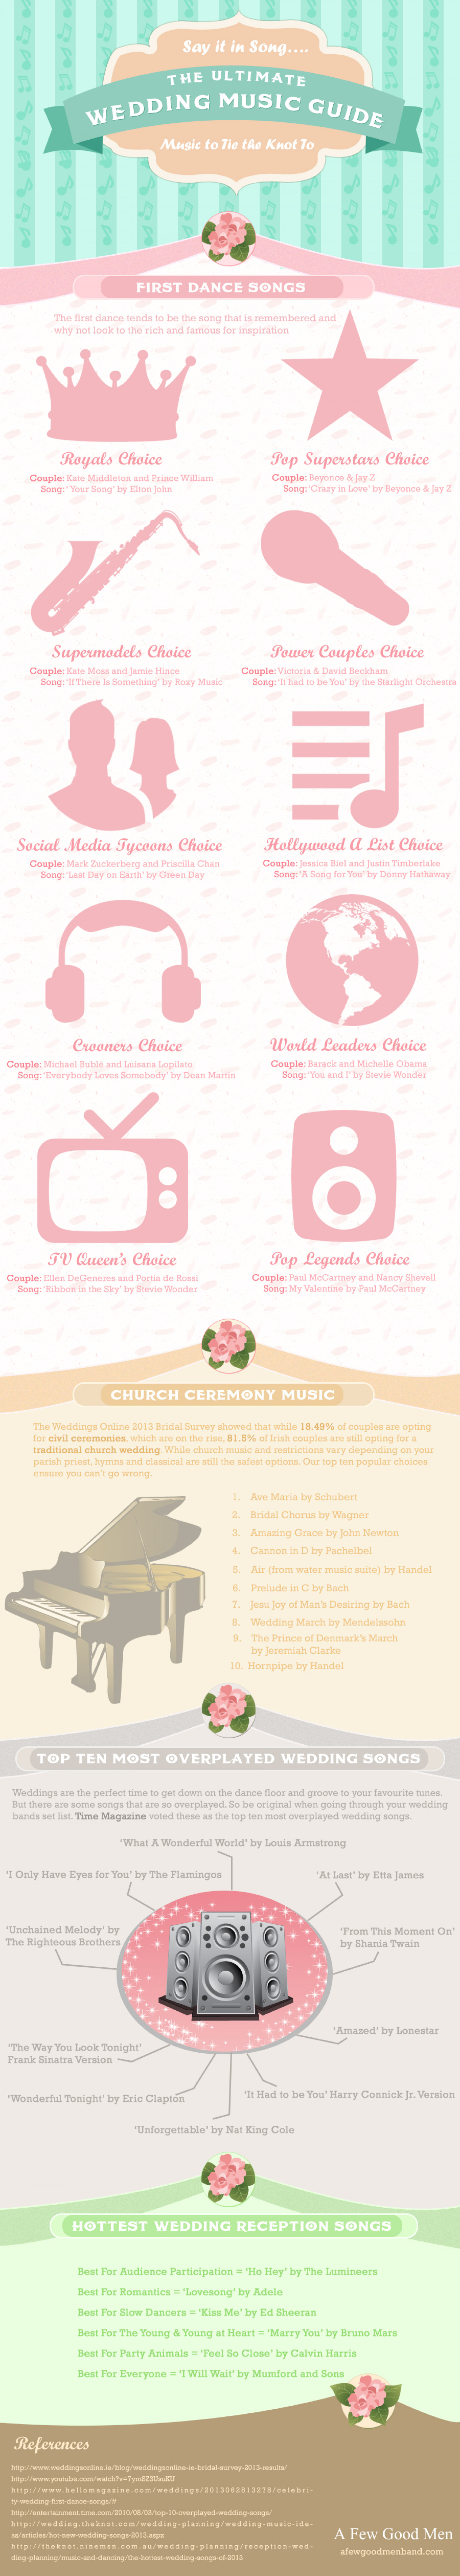 The Ultimate Wedding Music Guide Infographic